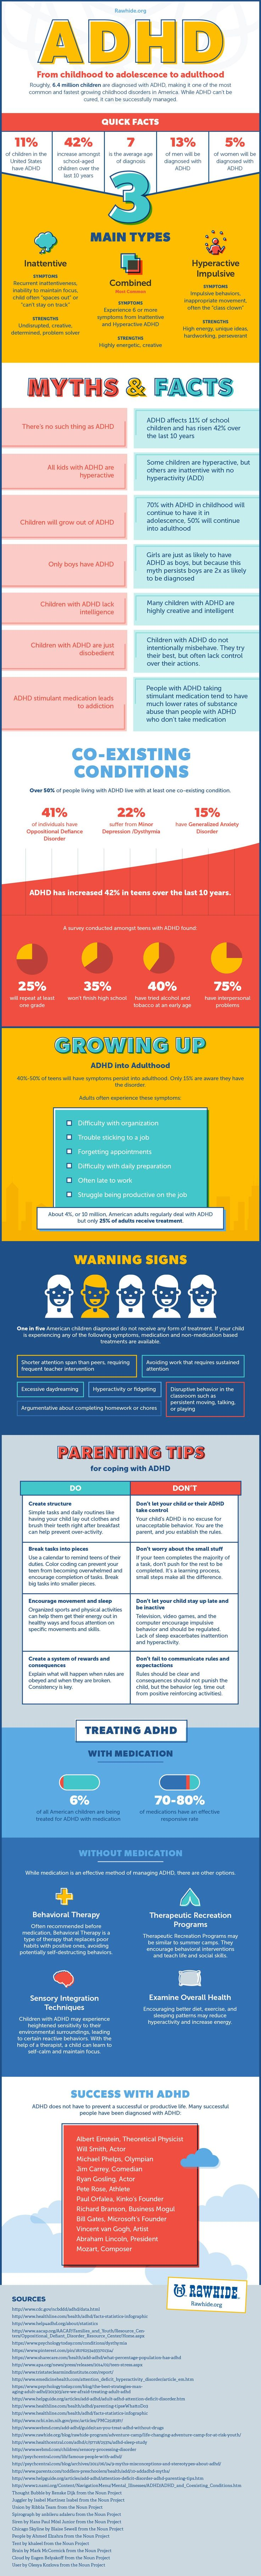 Prevalence rates, types, warning signs, myths and facts, adult symptoms and parenting tips. ADHD infographic put together by the team at Rawhide Boys Ranch.